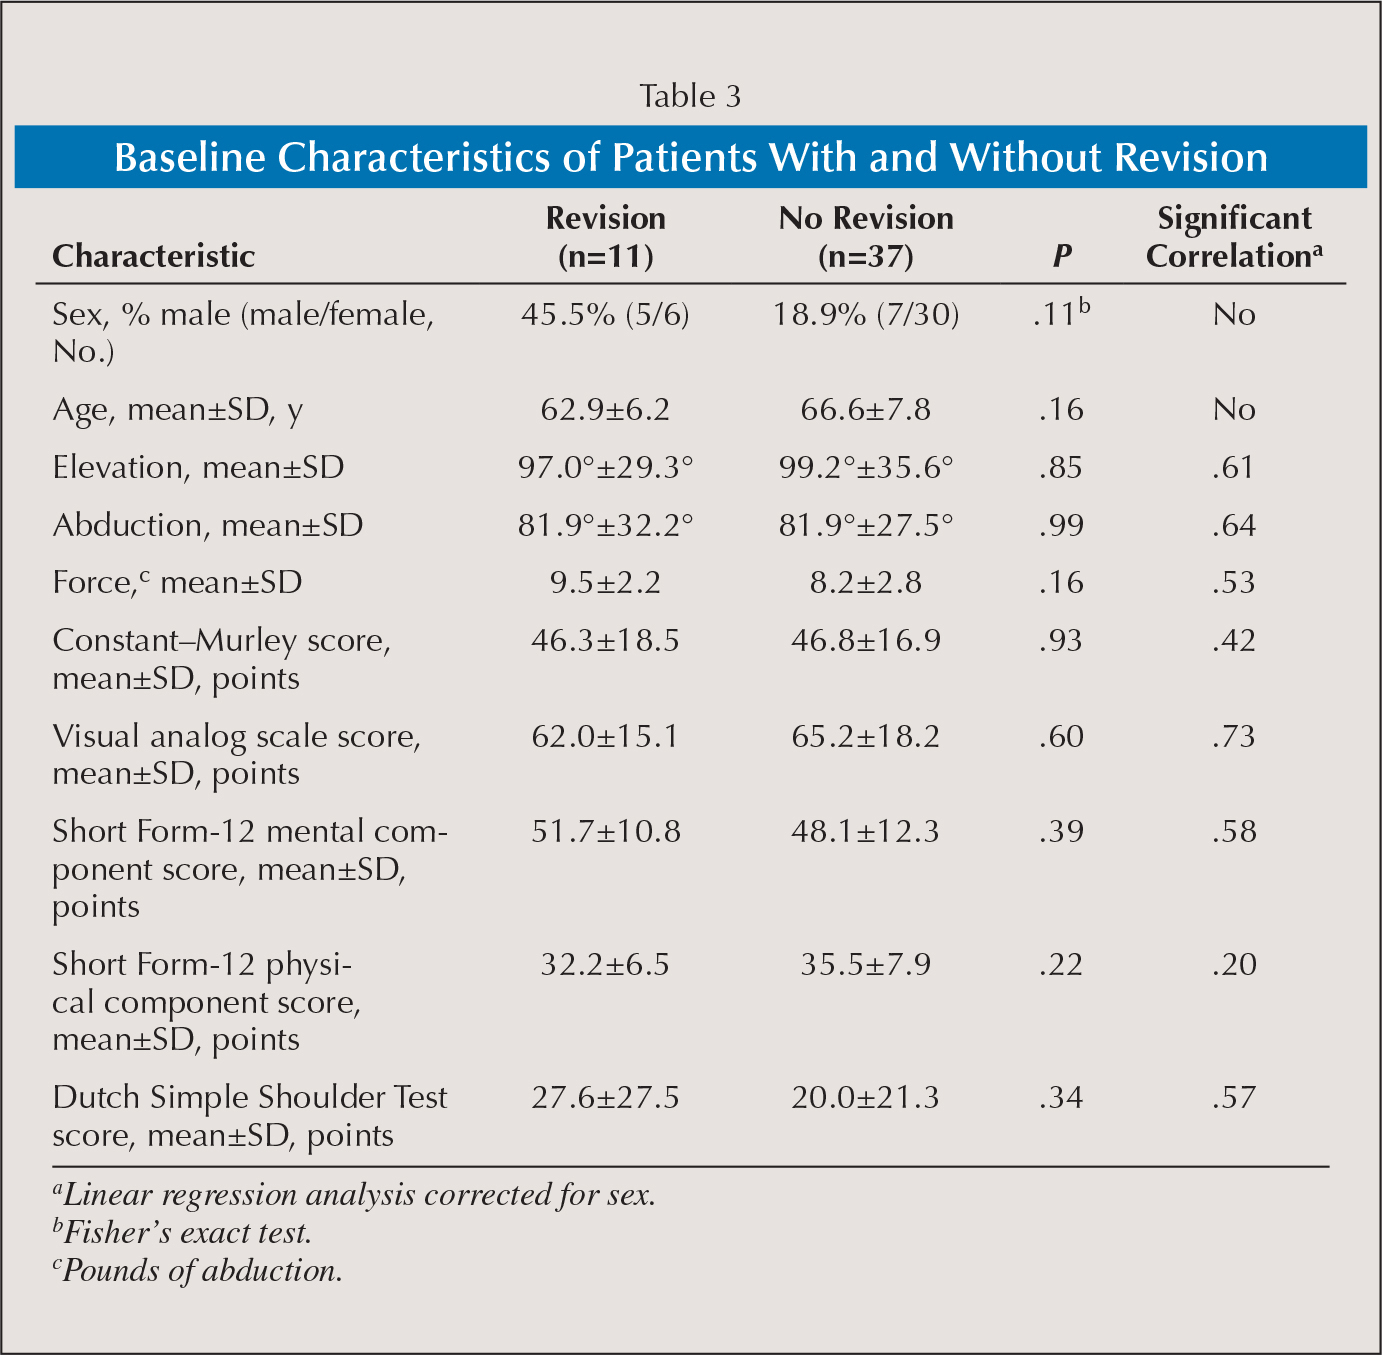 Baseline Characteristics of Patients With and Without Revision